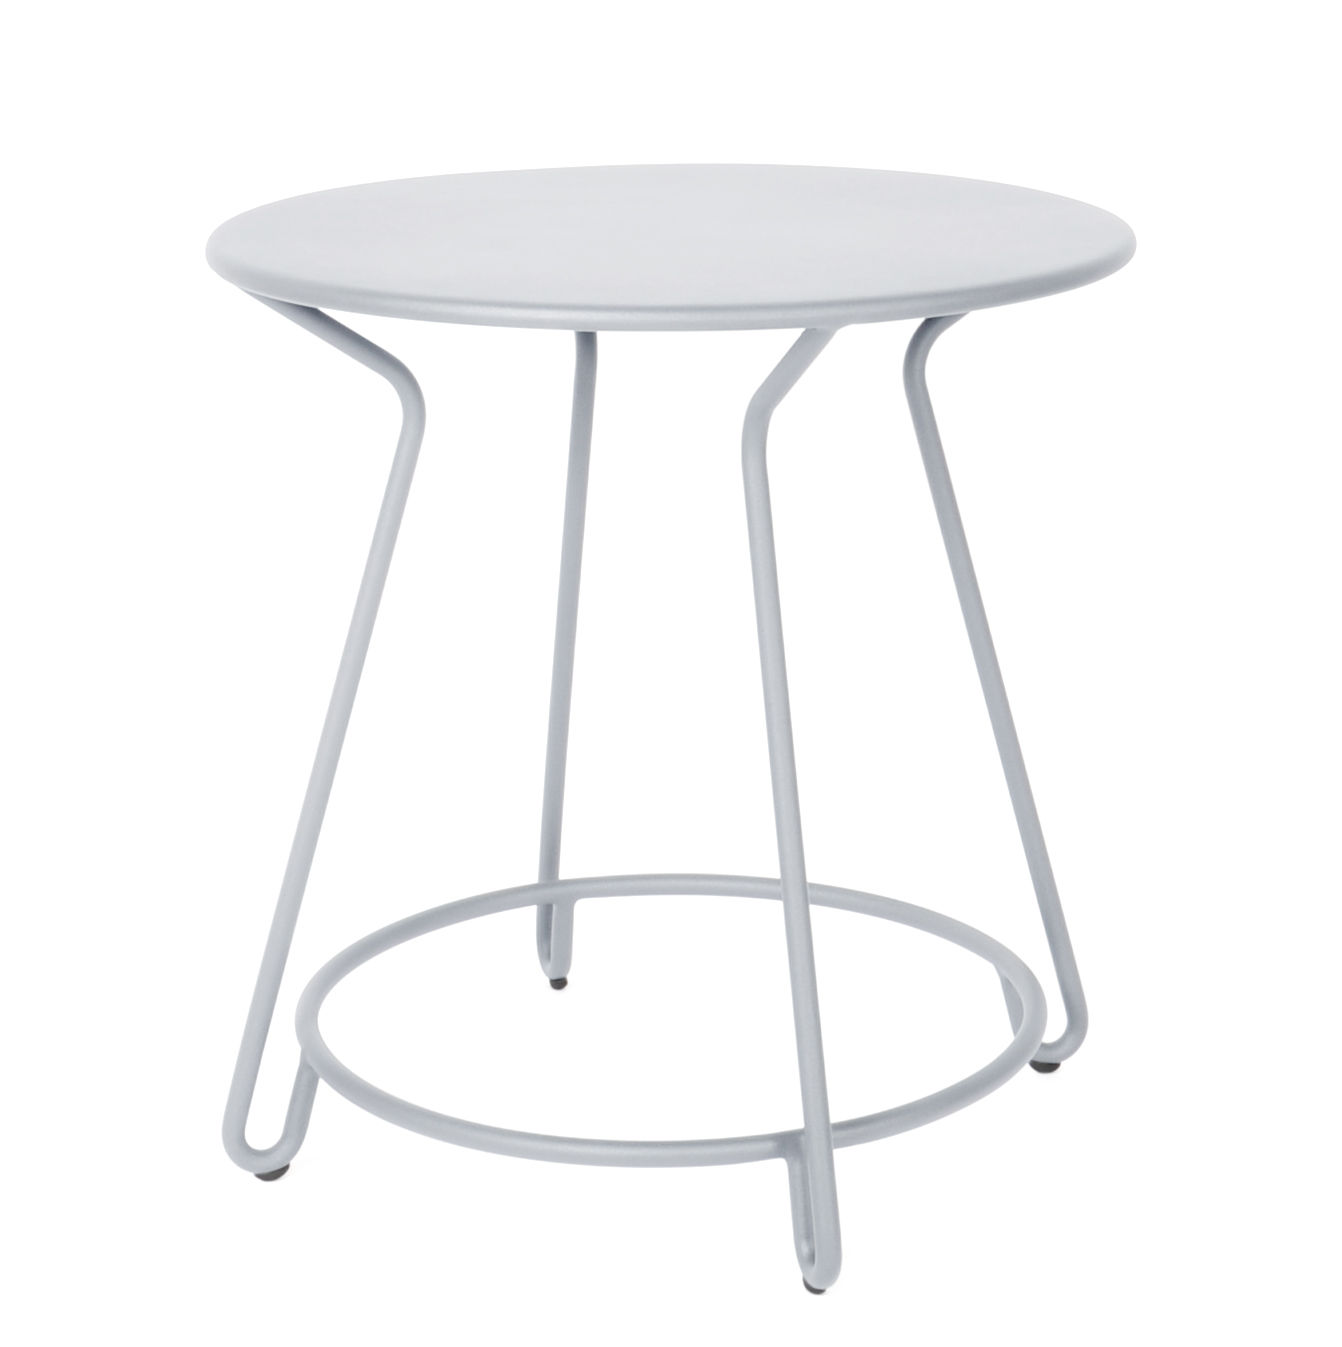 Outdoor - Garden Tables - Huggy Round table - Ø 75 cm / Aluminium by Maiori - Frosty grey - Lacquered aluminium